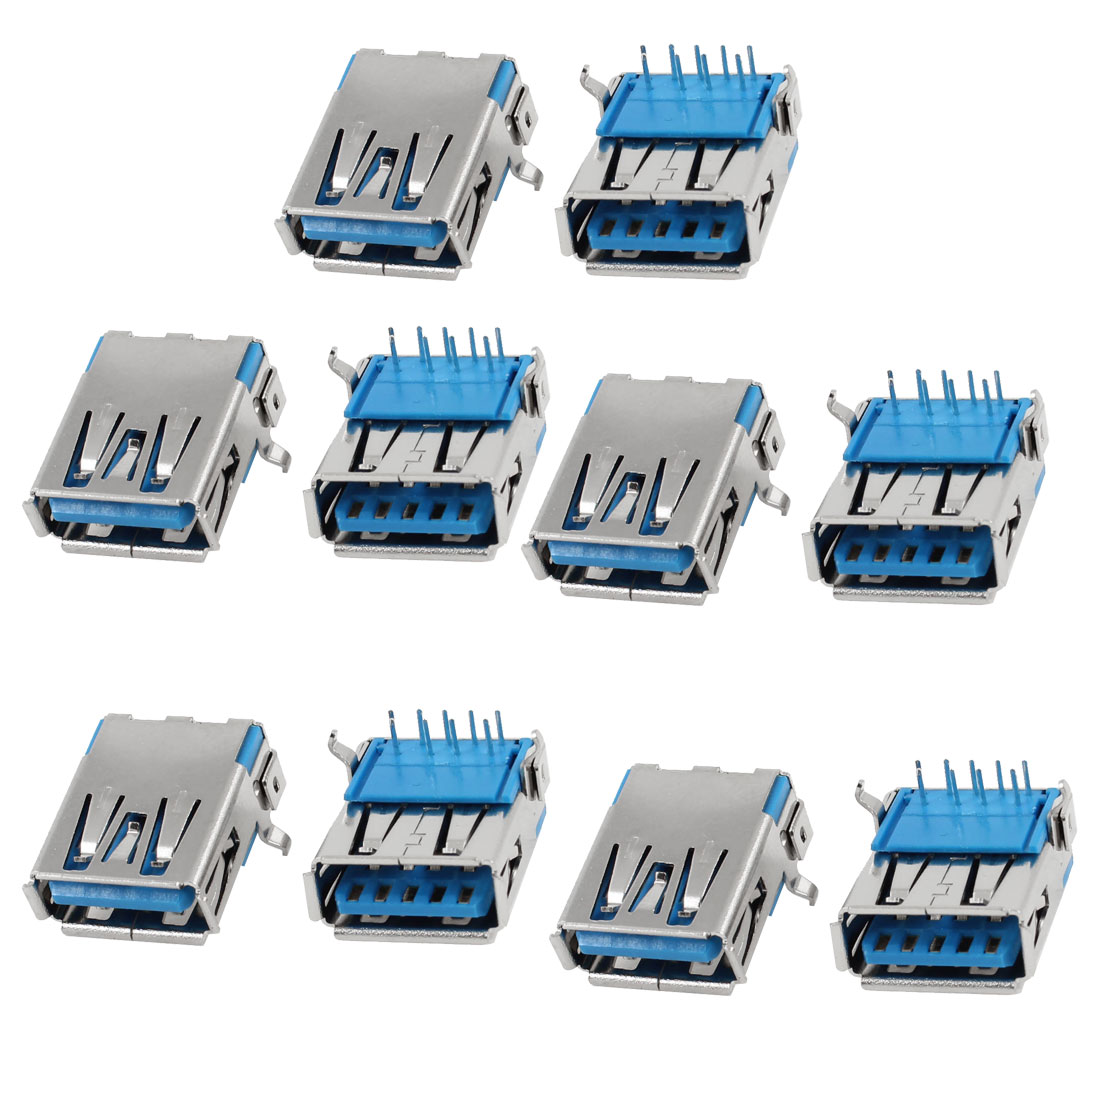 10 Pcs USB 3.0 Type A Female Right Angle 9-Pin DIP Jack Socket